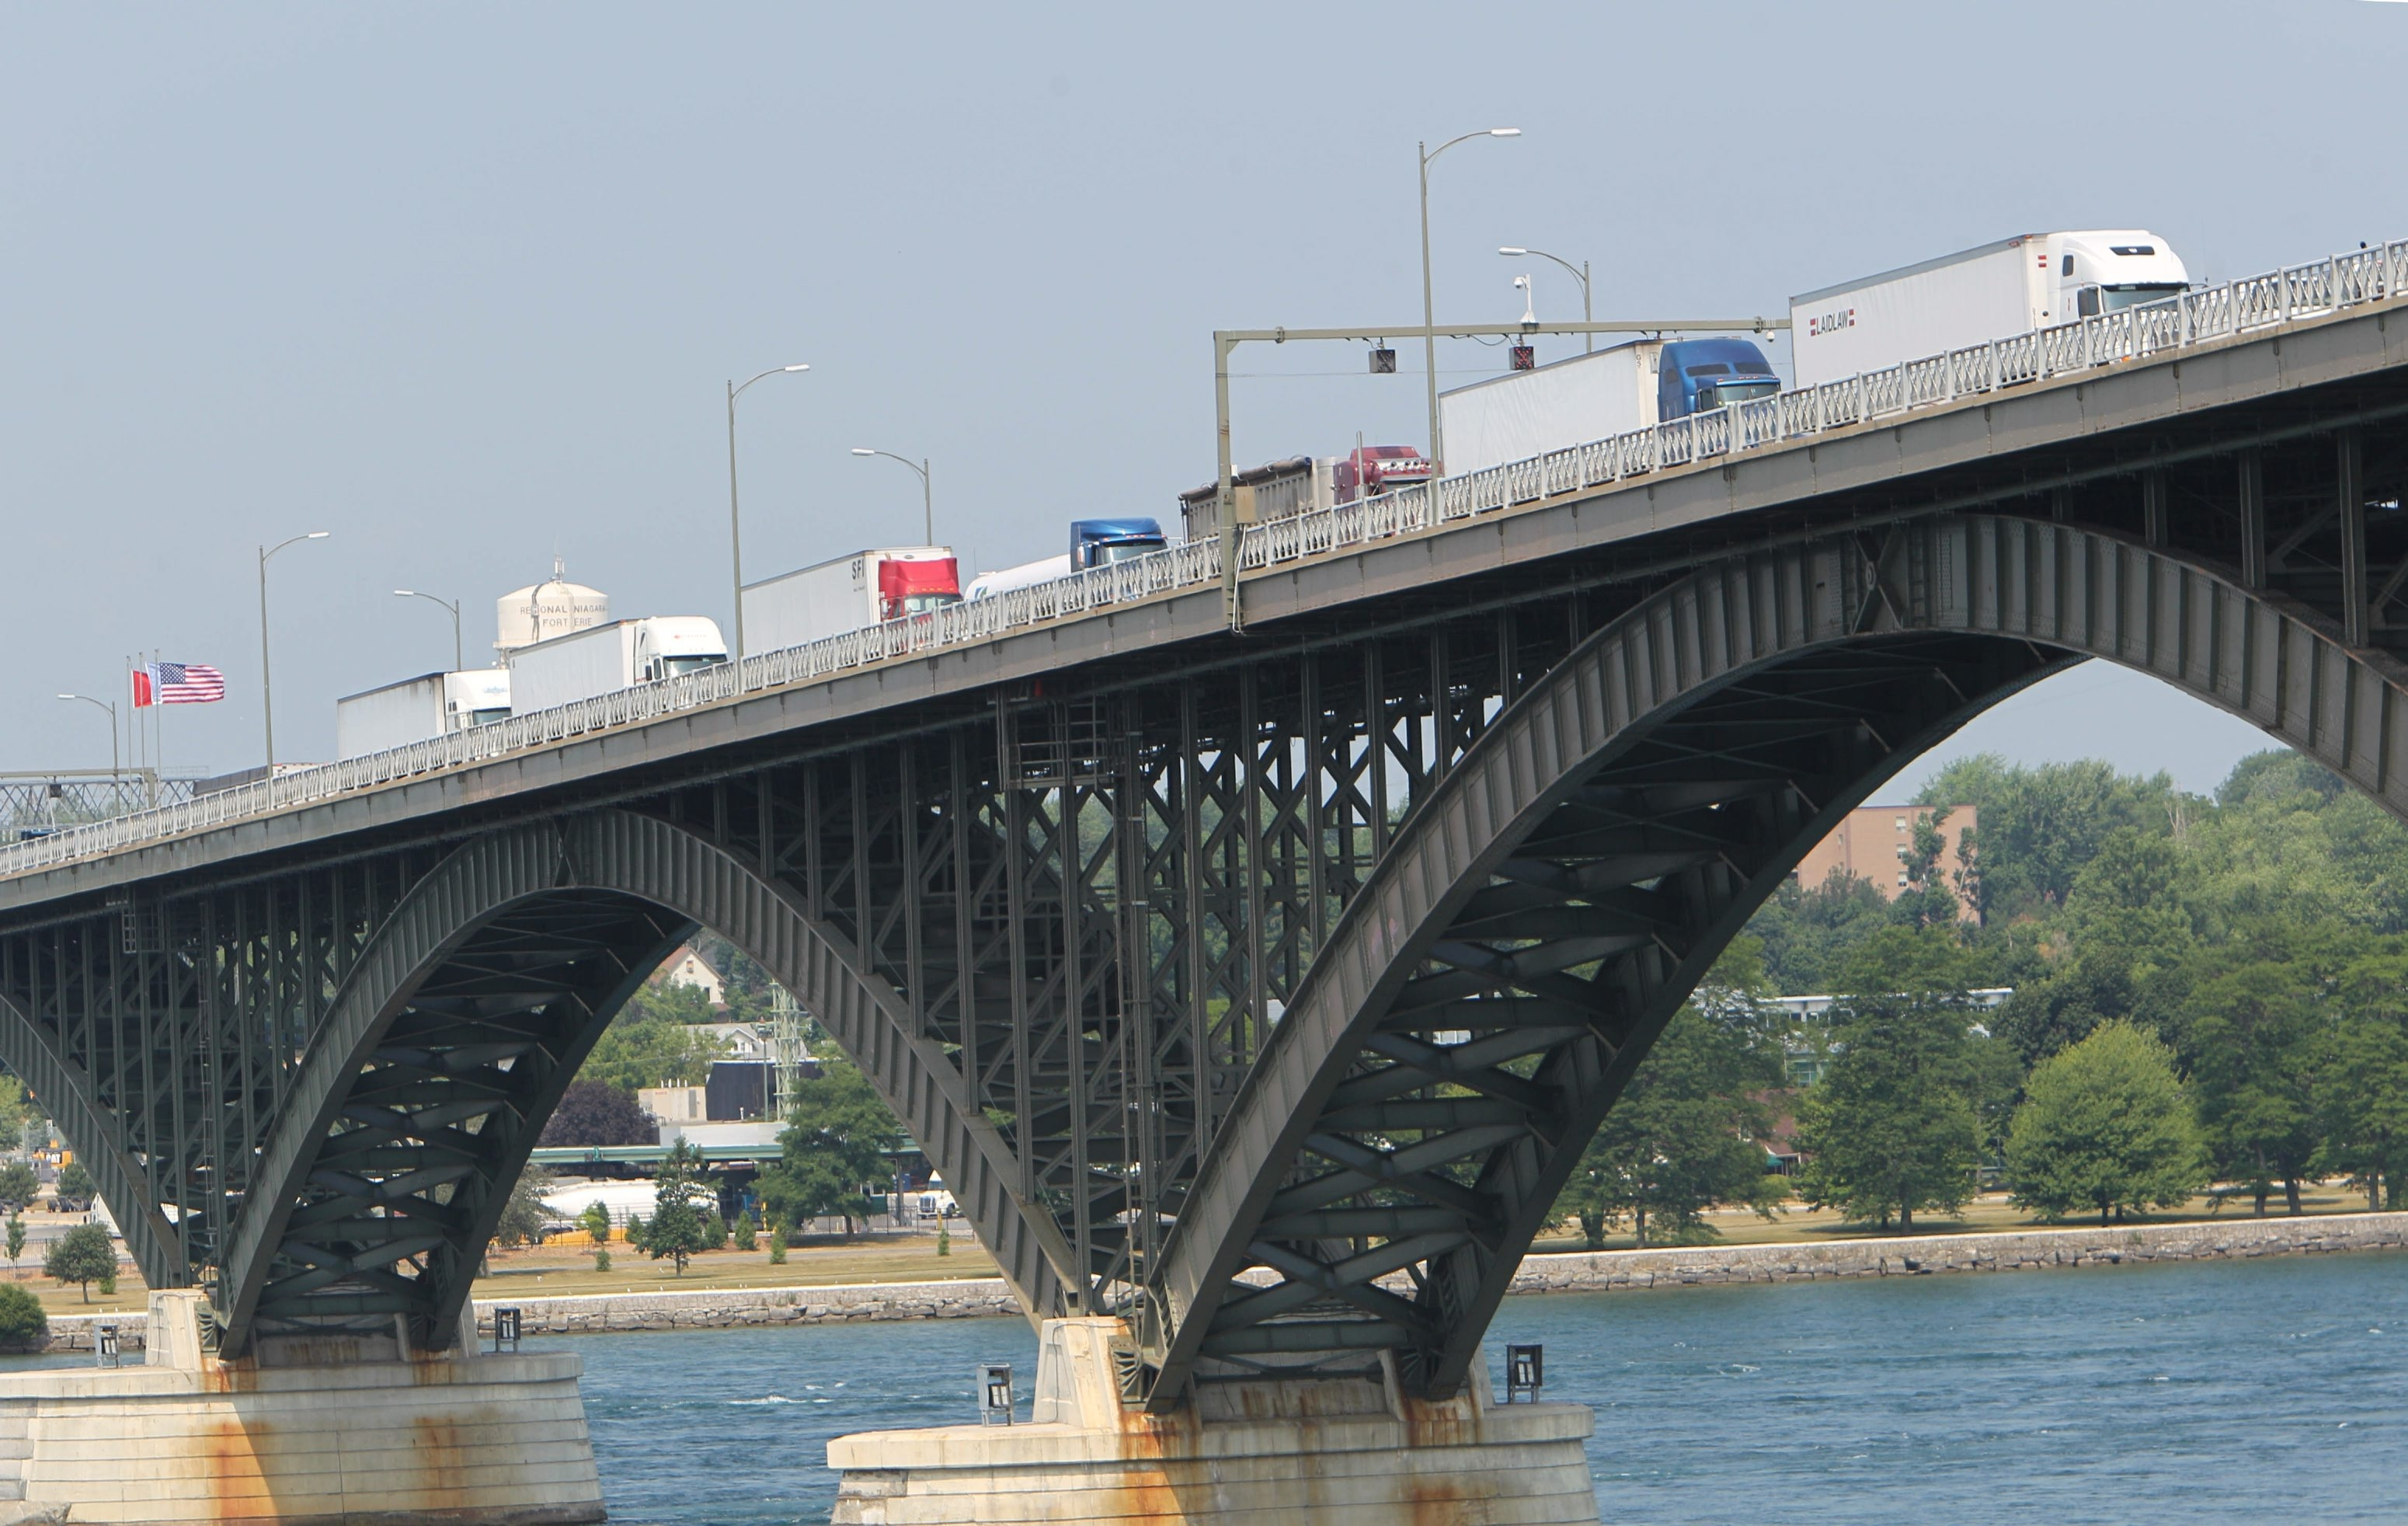 The Peace Bridge Authority's board unanimously approved a capital plan for $50 million in projects last October. Those American-side projects include widening the approach to the bridge inspection booths, a new ramp to move traffic off the plaza more efficiently and a new customs house.